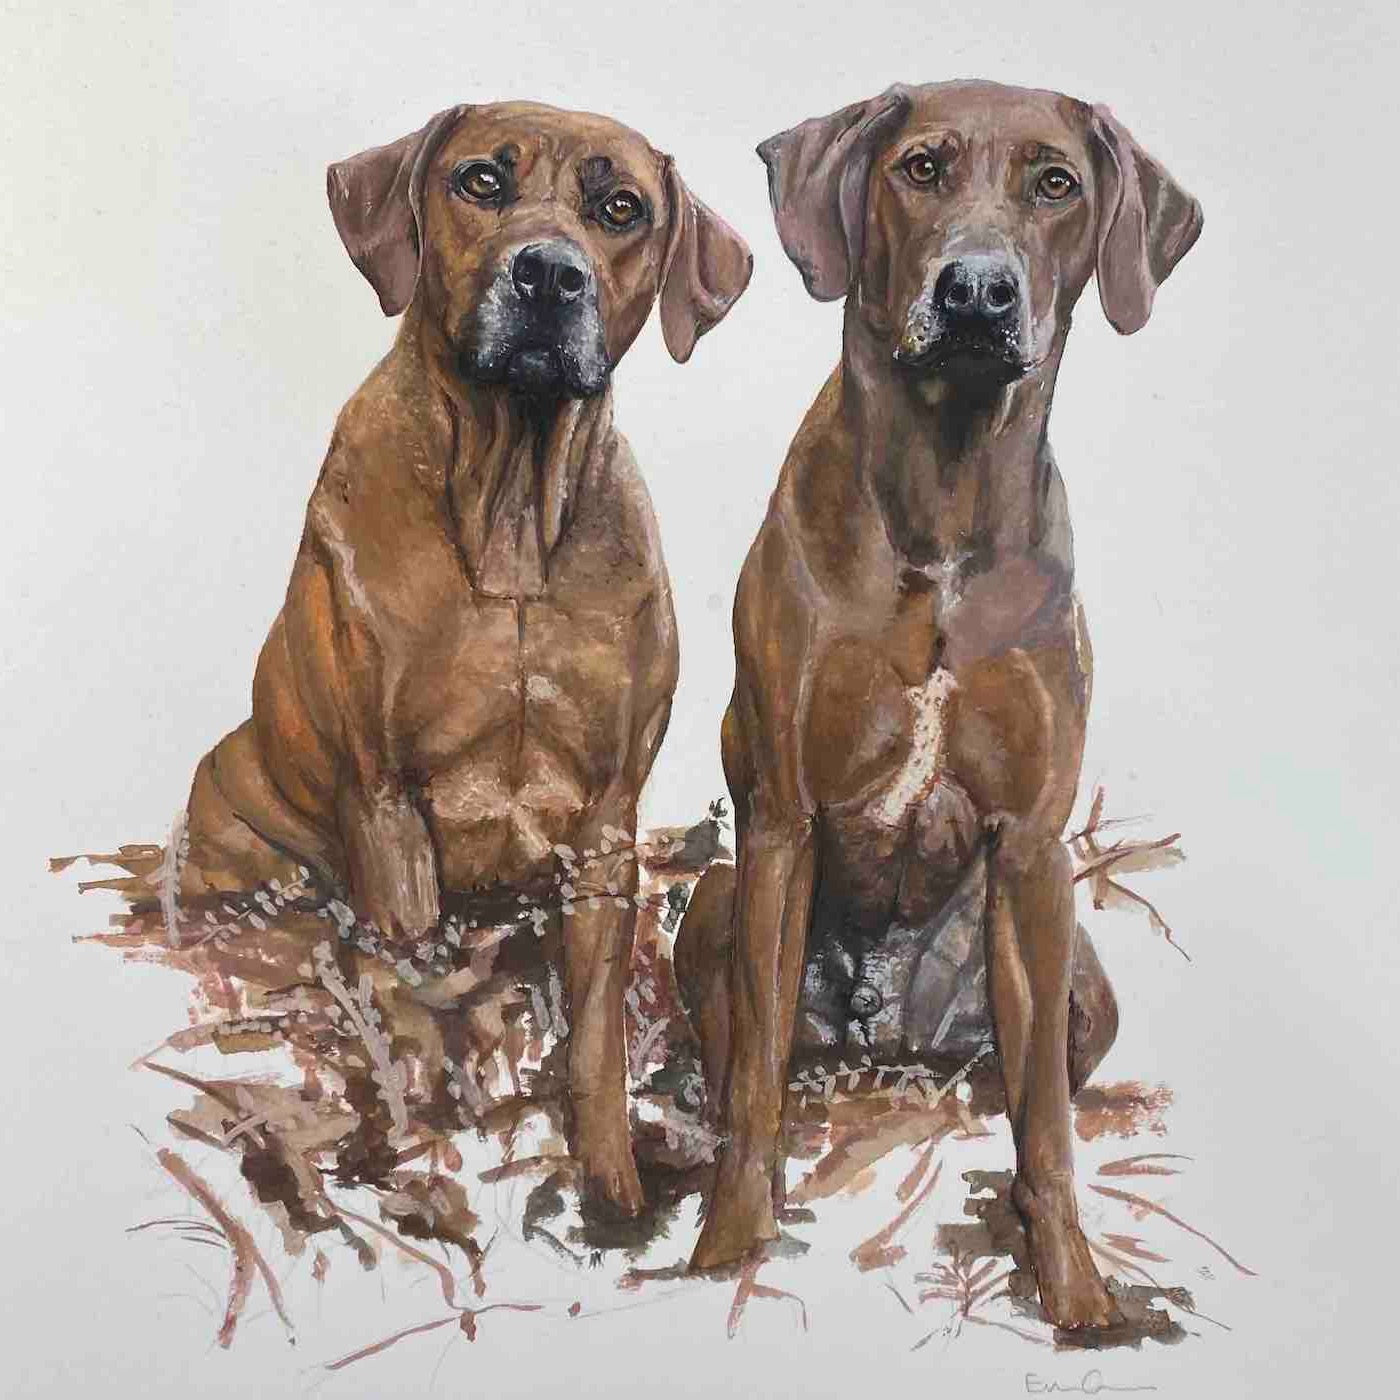 Painting of two Rhodesian Ridgeback copper coloured dogs facing forward.